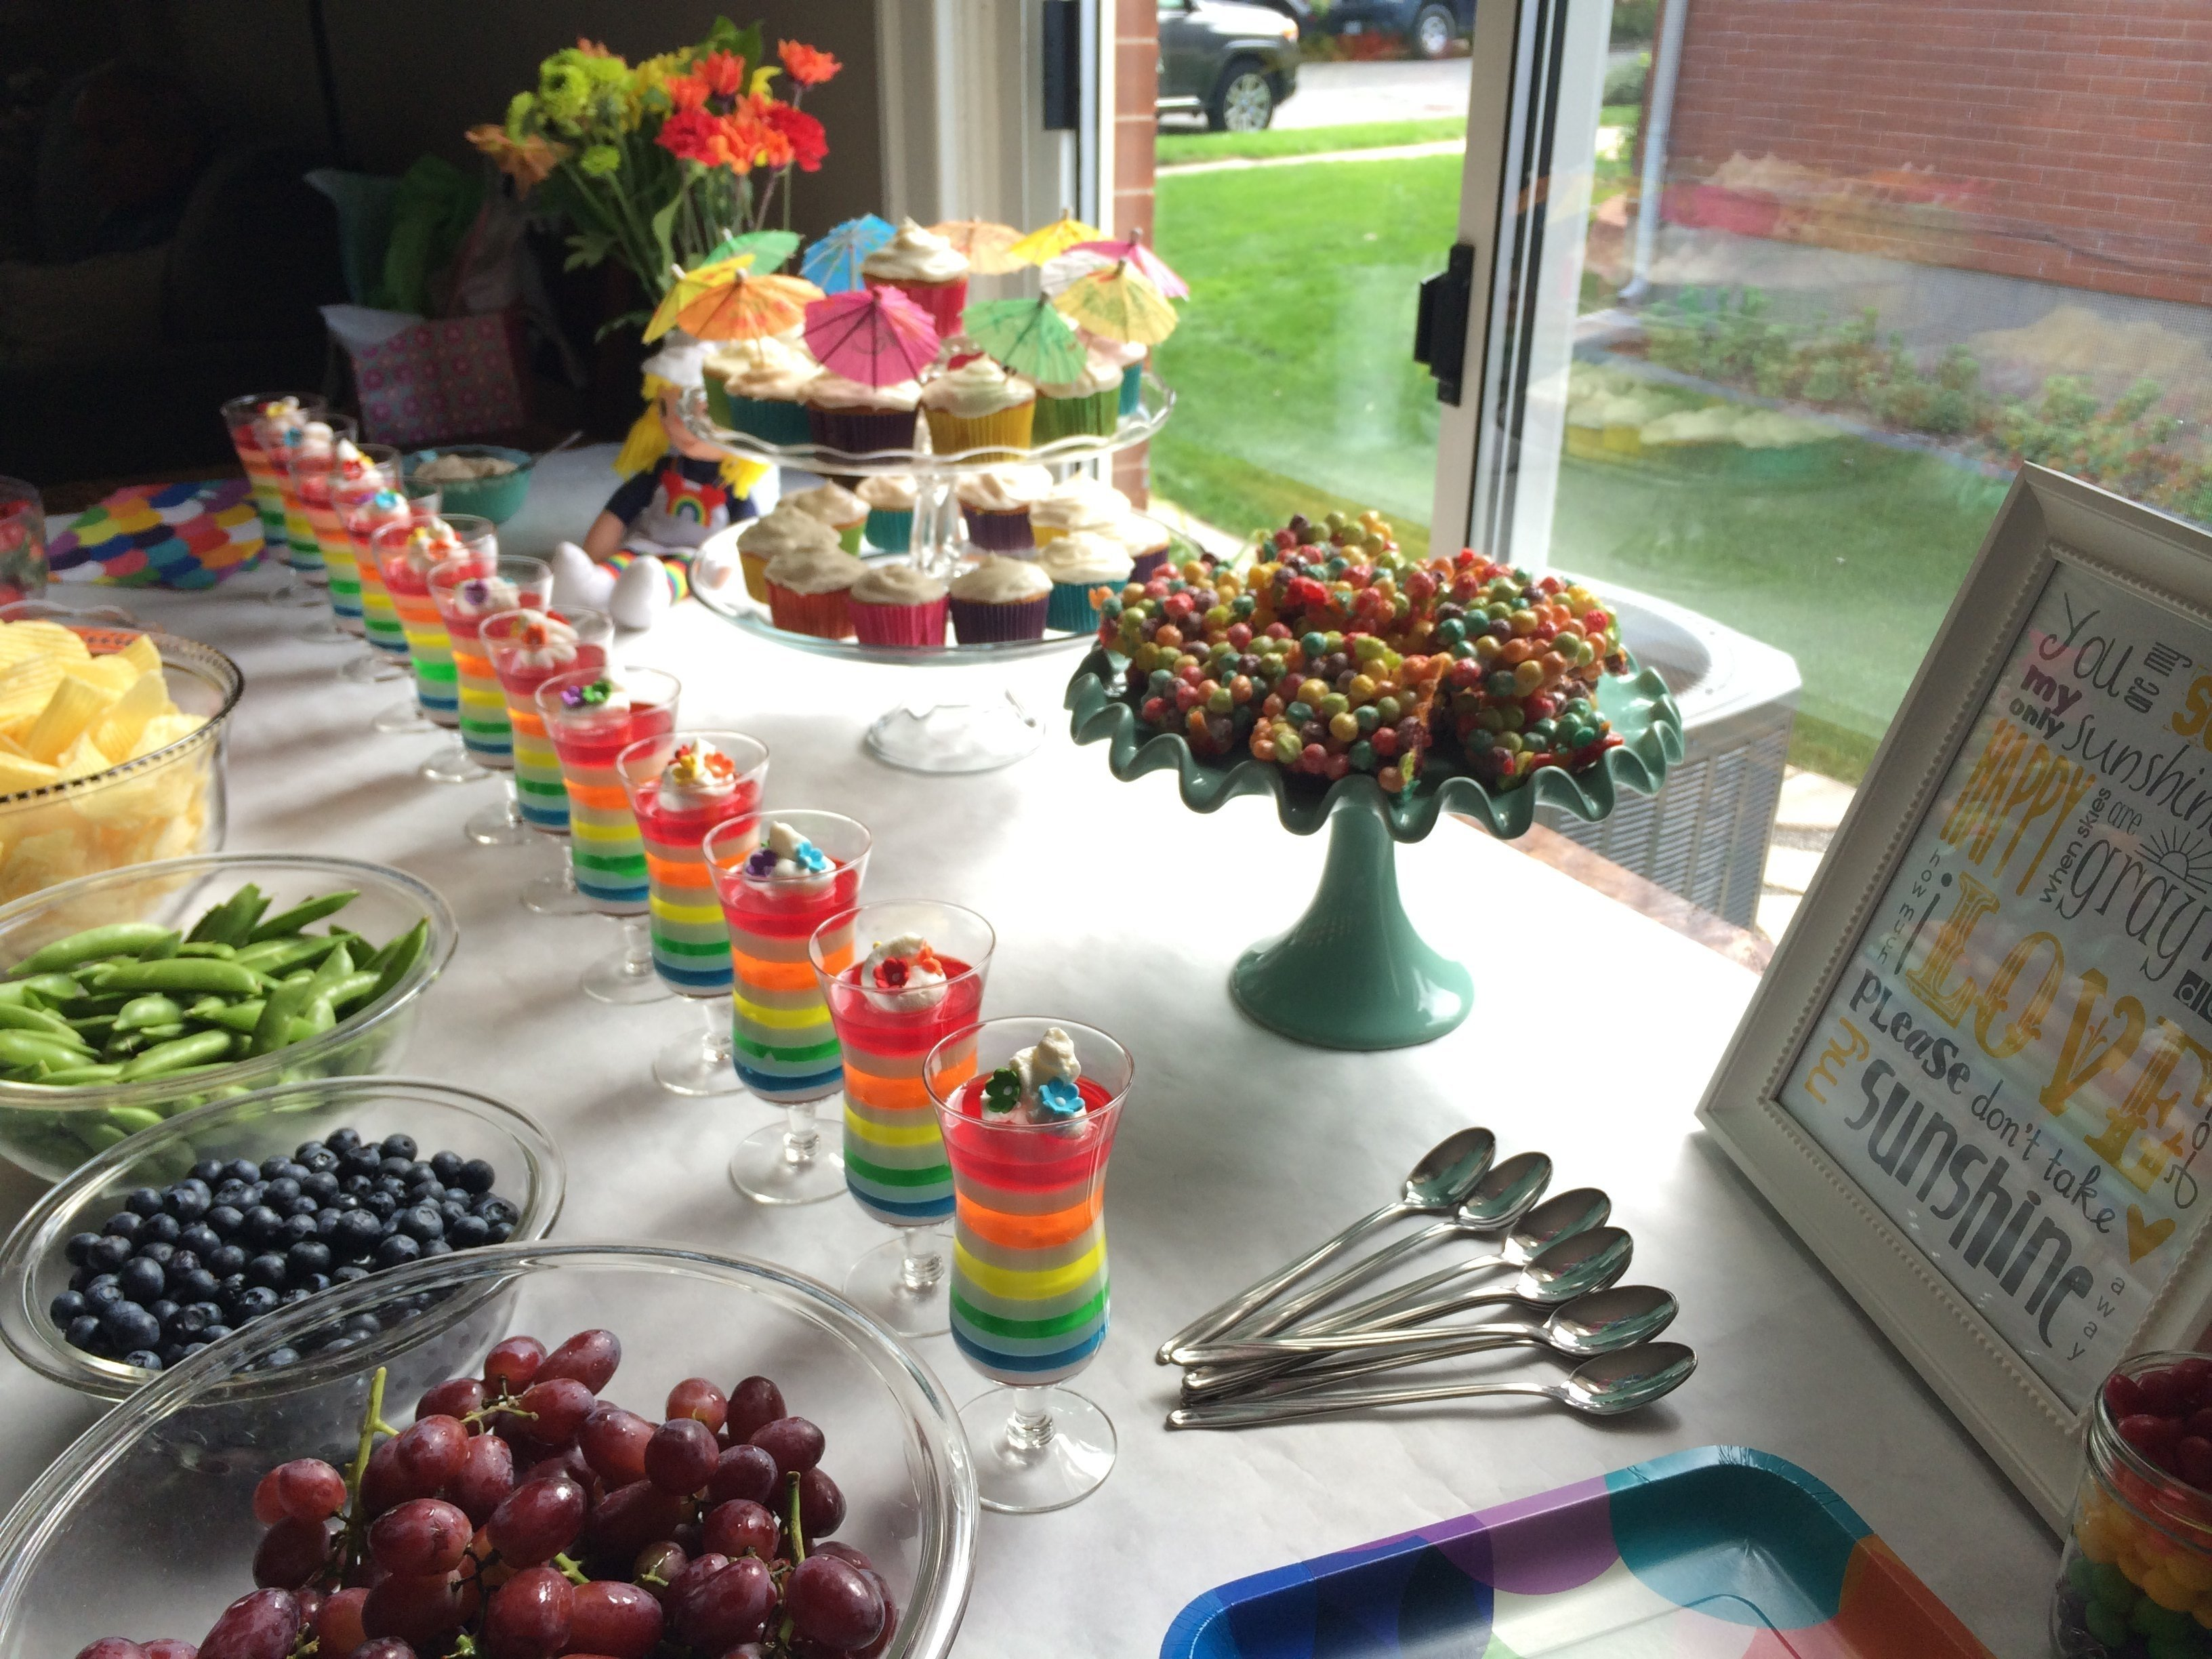 10 Wonderful Ideas For 2 Year Old Birthday Party Chic Inspiration Game